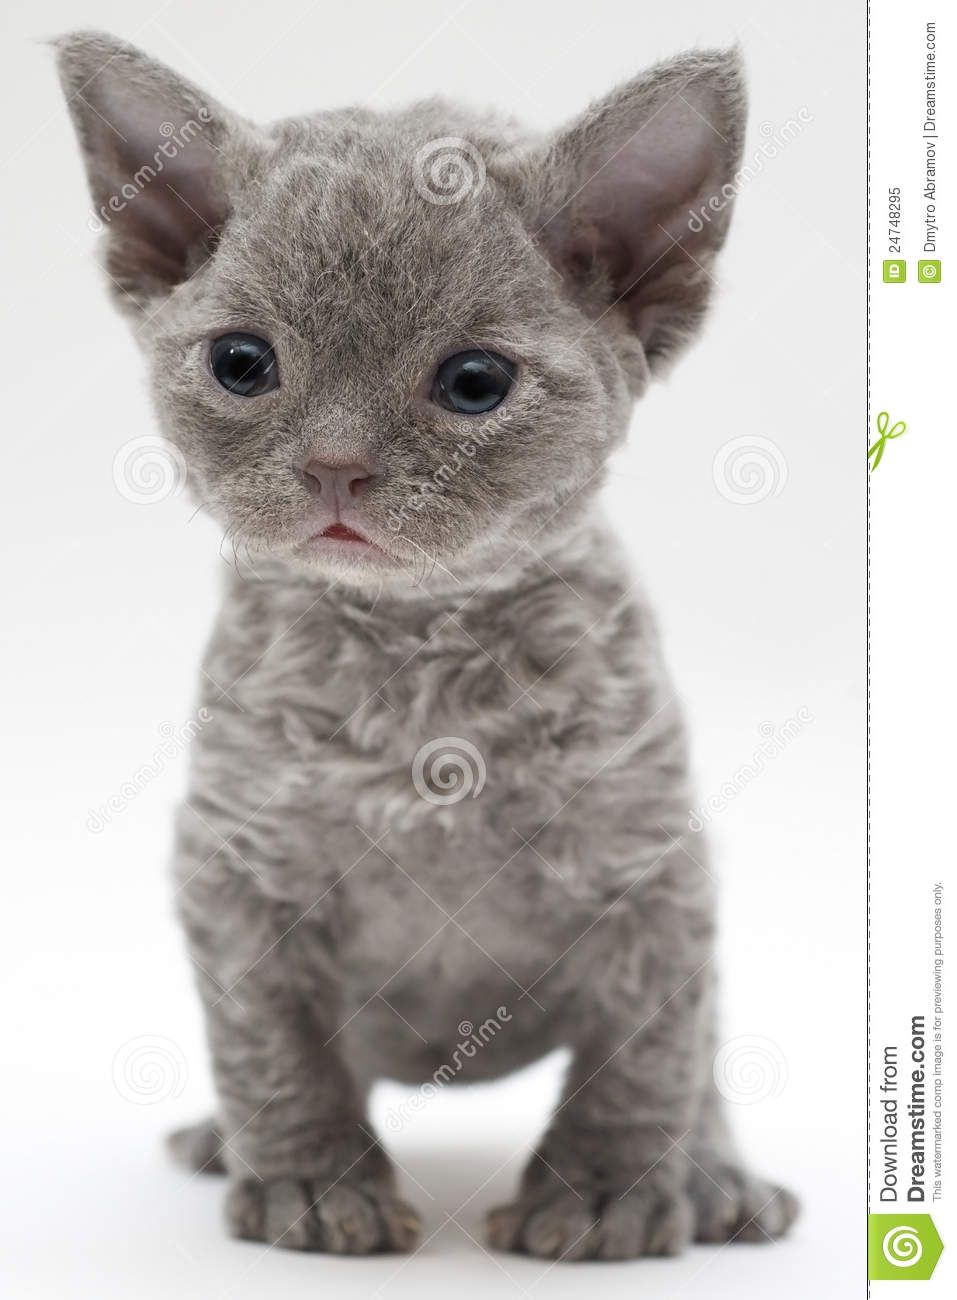 Top 5 Sweet Little Tiny Cats Breeds